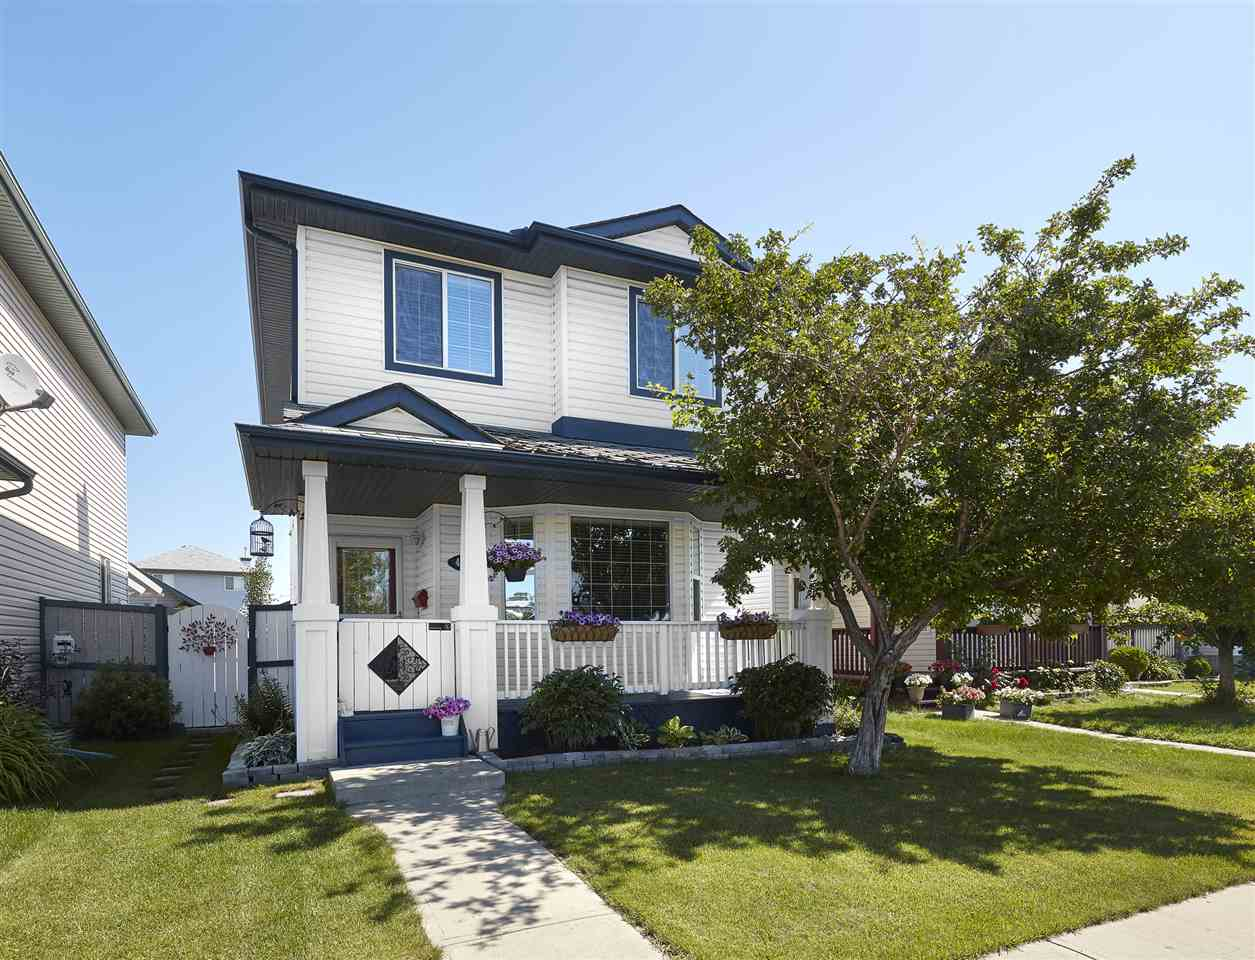 Incredible location, on a quiet cul-de-sac, in Miller! This beautiful 2 storey family home has over 1255sqft; 4 bedrooms, 2.5 bathrooms, fully finished basement & double detached garage (21.4 x 19.7)!  Entering the home you will love the large foyer with tile flooring.  Step into the bright & spacious living room with beautiful hardwood flooring throughout.  The large eat-in kitchen has a prep island, ample counter/cabinet space & large dining area.  The back entrance/boot room & ½ bathroom complete the main level.  Upstairs the large master bedroom has a walk-in closet, bedrooms 2 & 3 are both a great size & a 4 piece bath completes the upper level.  Downstairs you will love the large family room, 4th bedroom, 4 piece bath, laundry room & storage!  Outside relax on the large deck & enjoy the beautifully landscaped, fully fenced backyard.  Close to all amenities, schools, shopping (Manning Town Centre) & more!  AC also included for the HOT days of Summer!!!